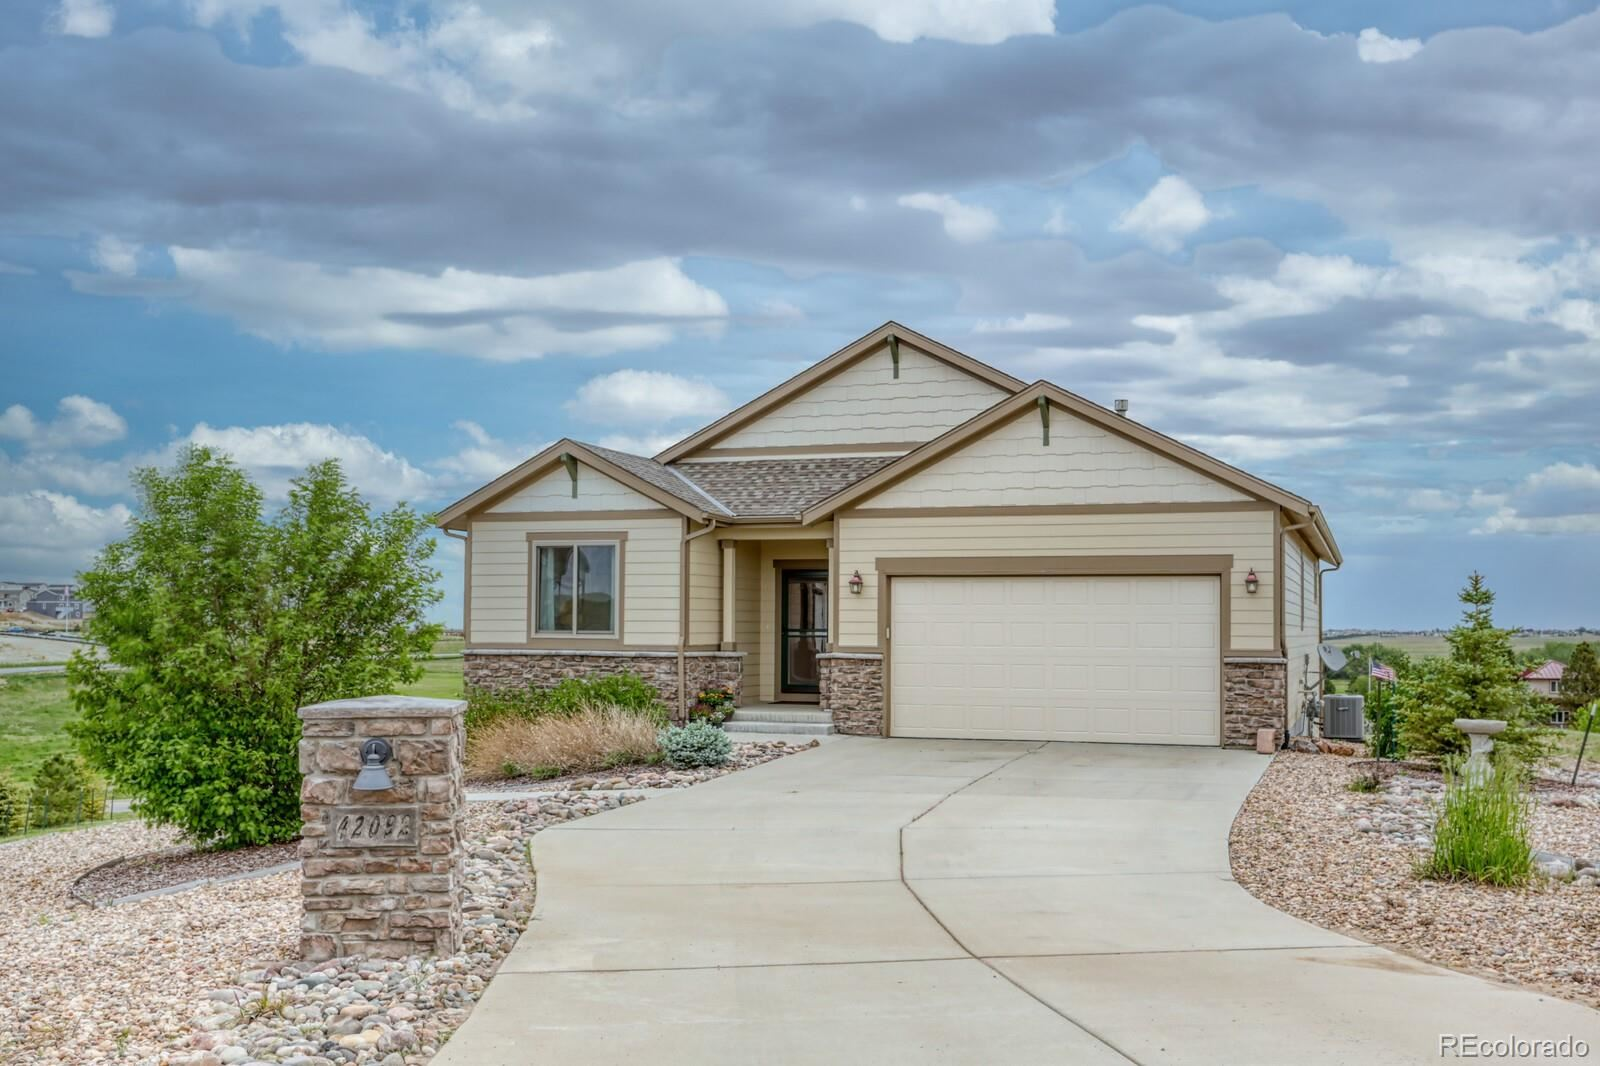 42092 N Pinehurst Circle, Elizabeth, CO 80107 - MLS#: 6089398